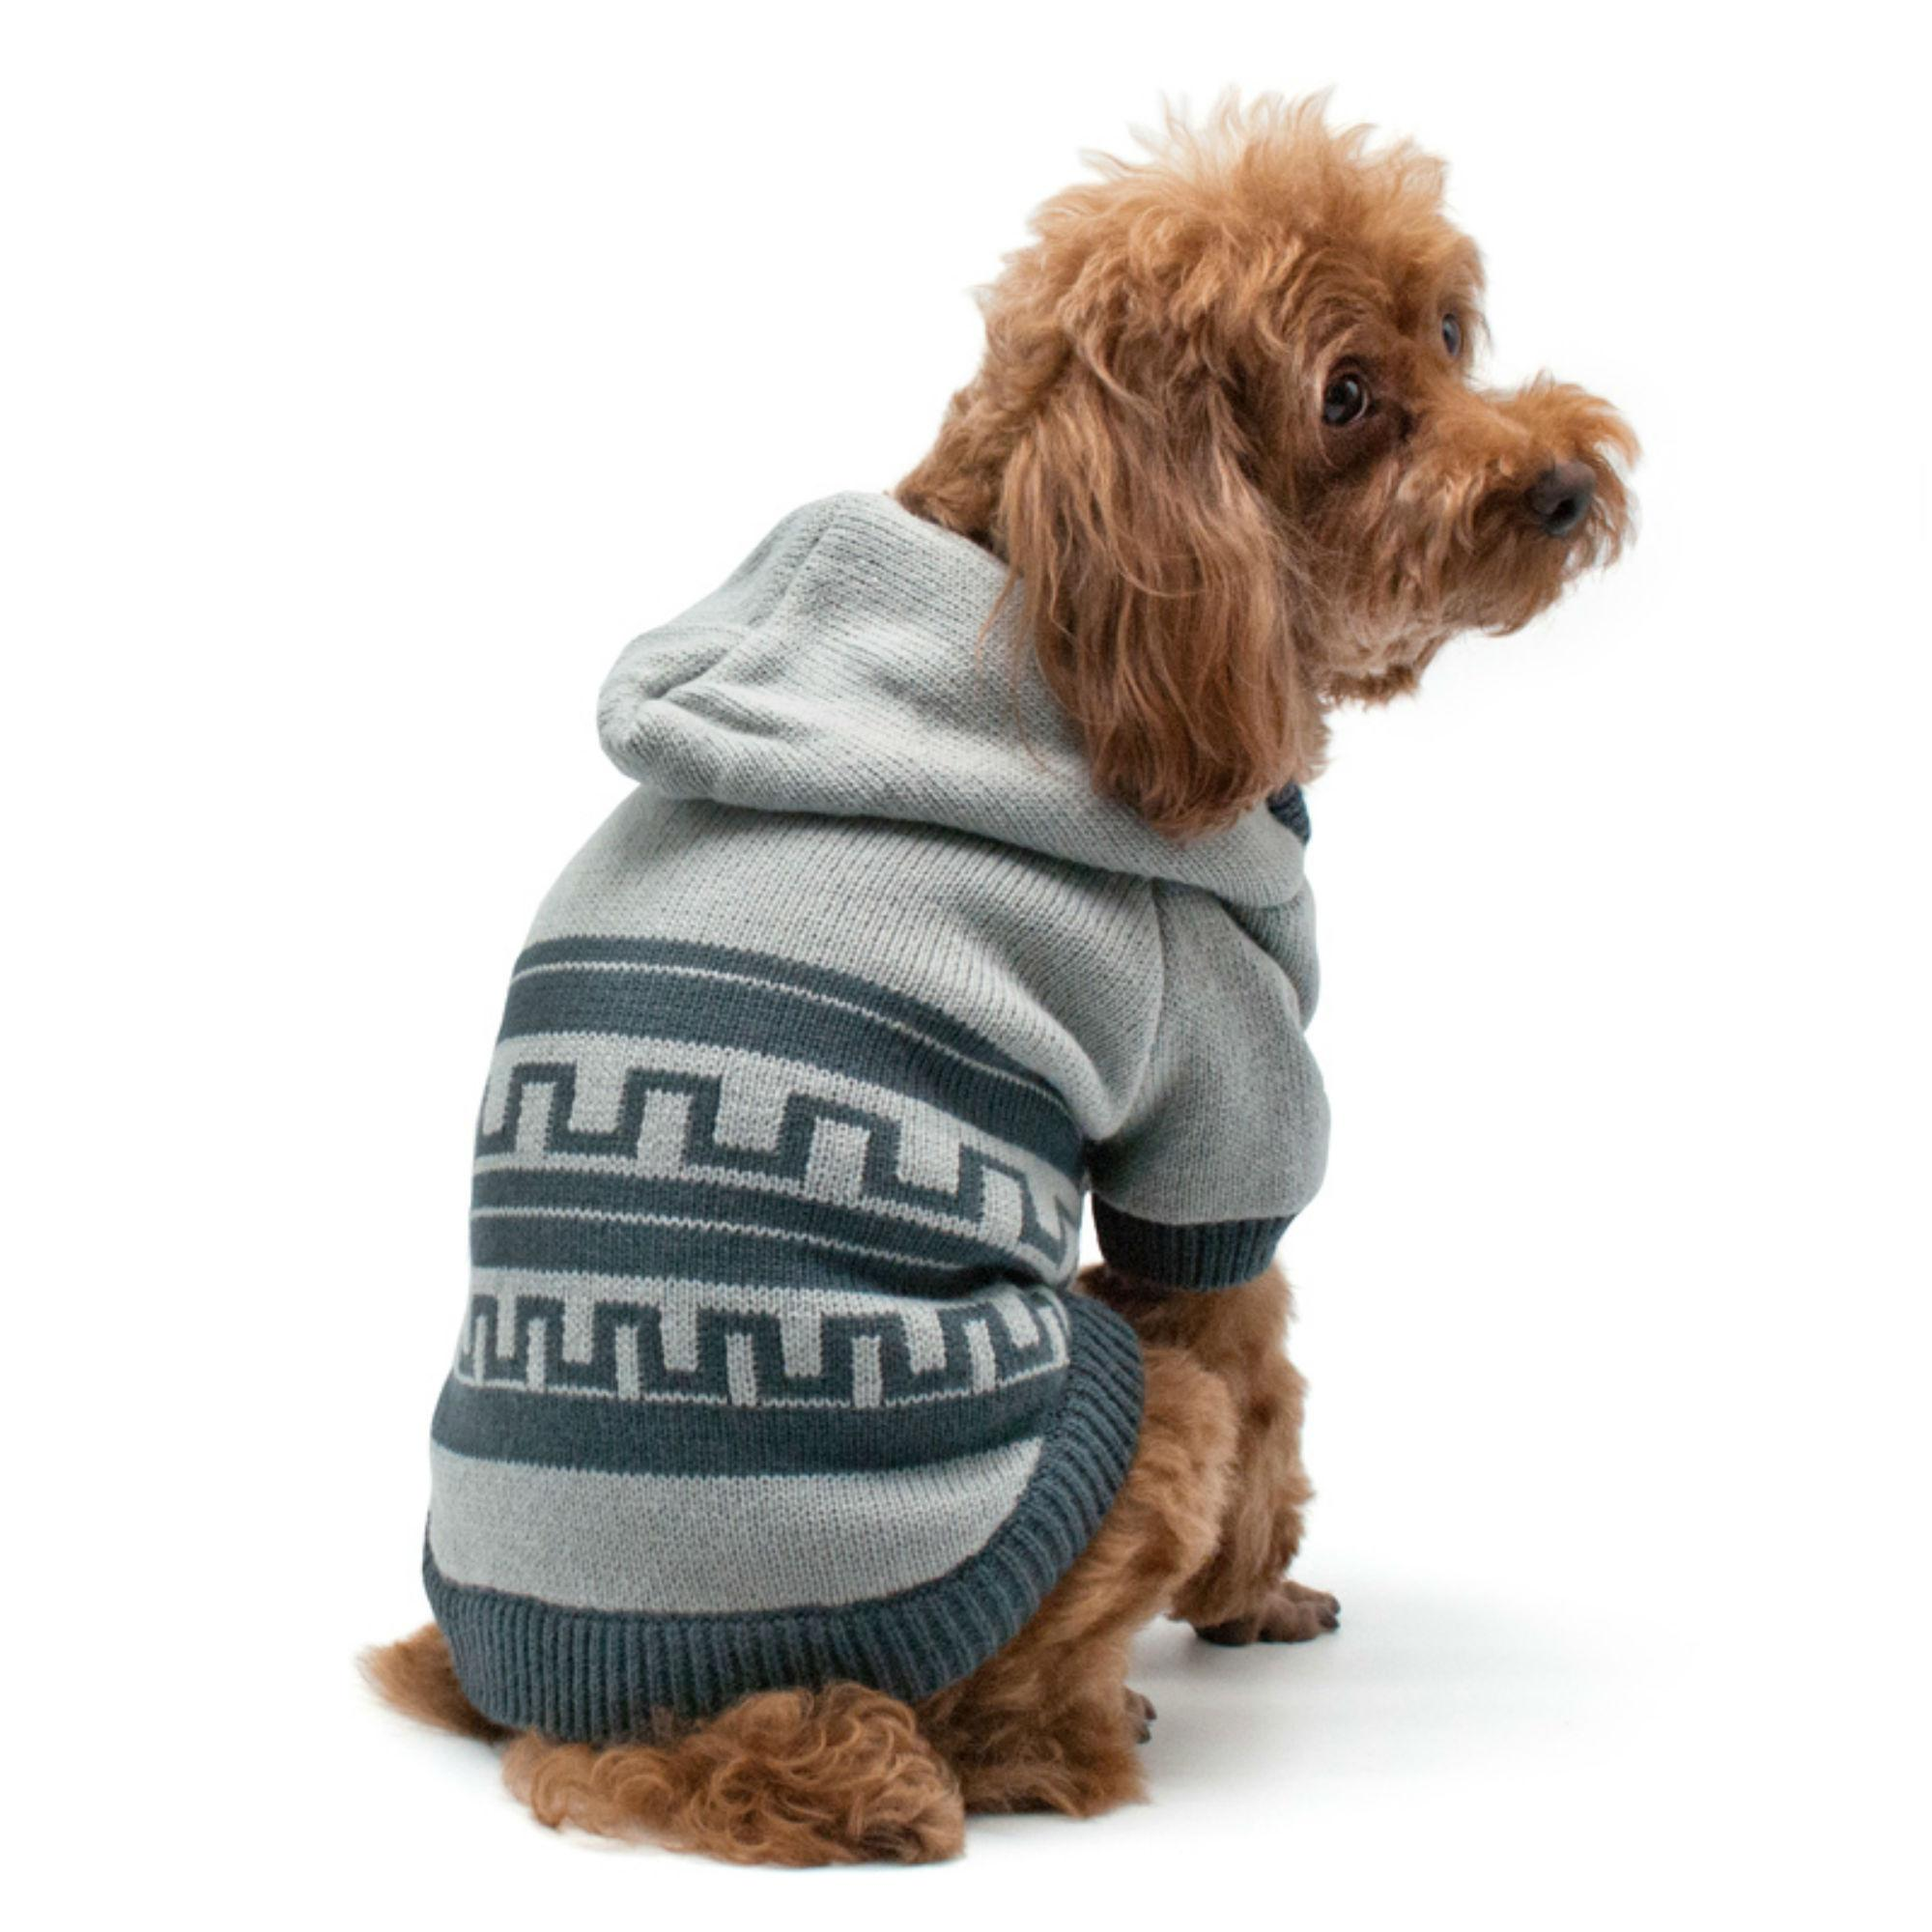 Pattern Sweater Dog Coat by Dogo - Gray